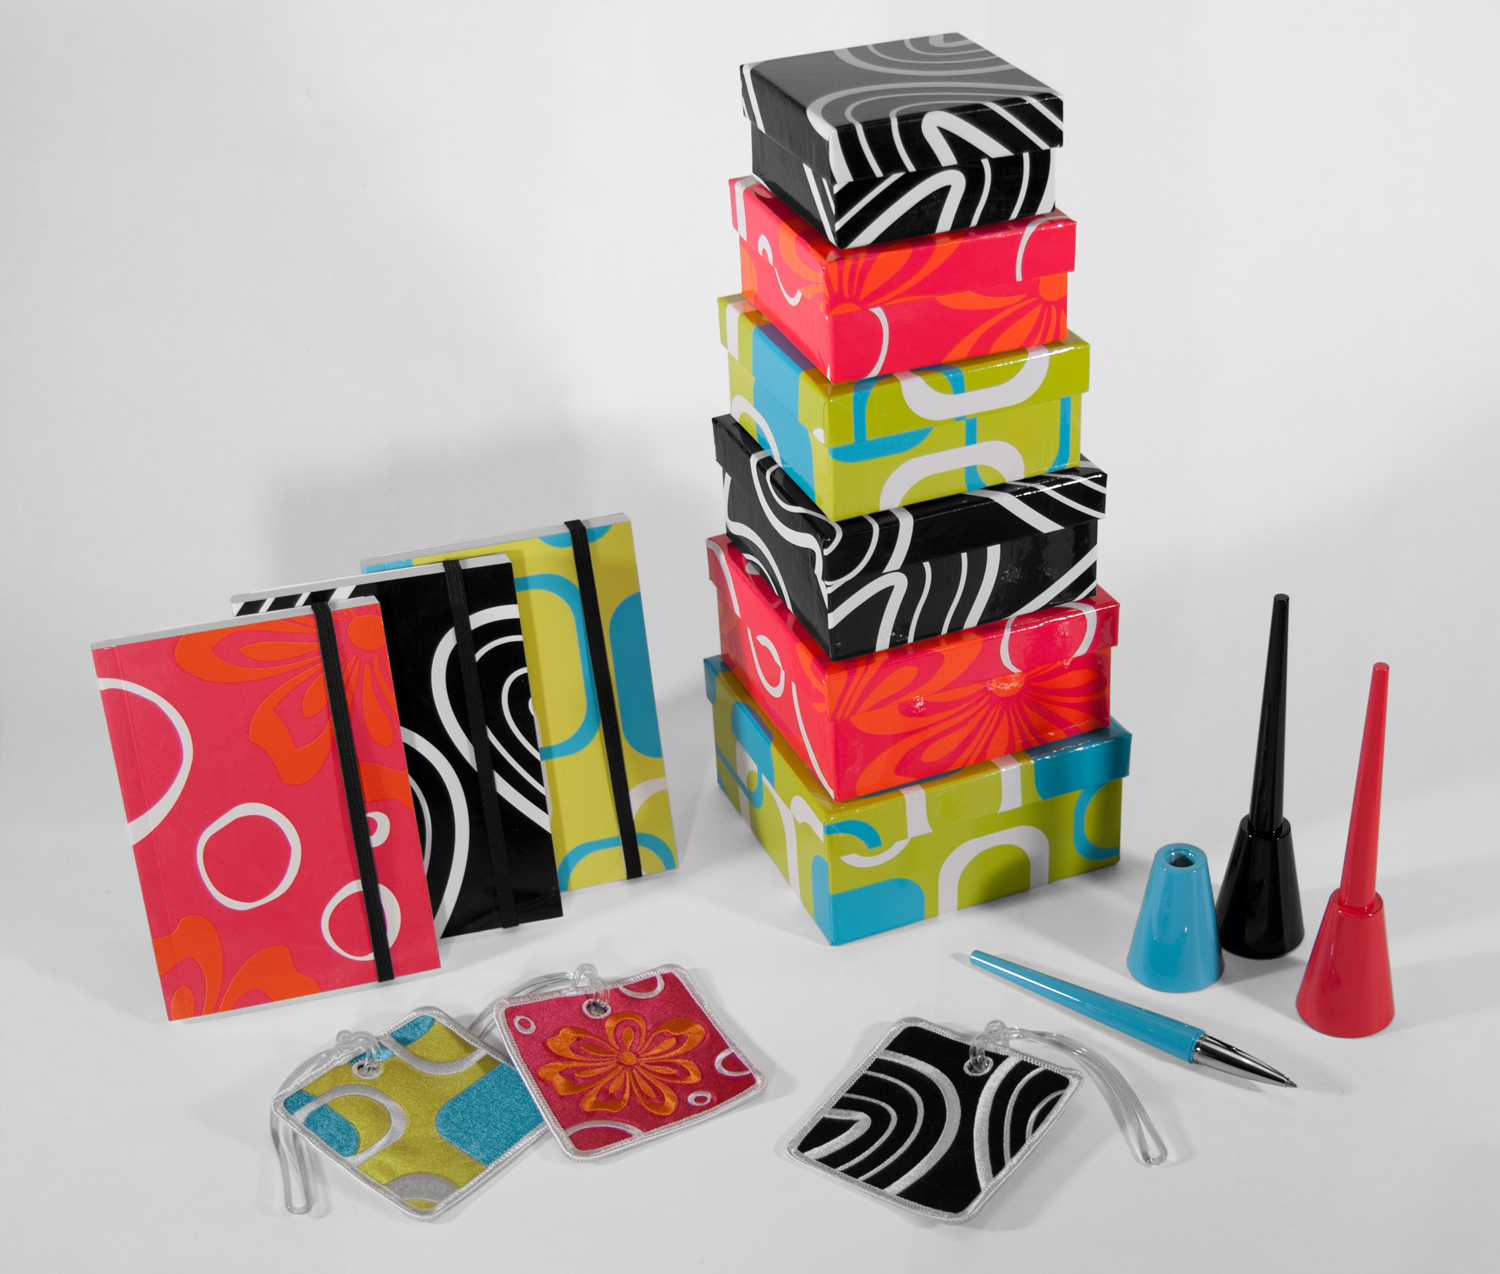 fab Collection - I was also responsible for working on a small collection of accessories for sale. The patterns and colors are all my work and really stood out in Xonex's product/collection line-up at the time.